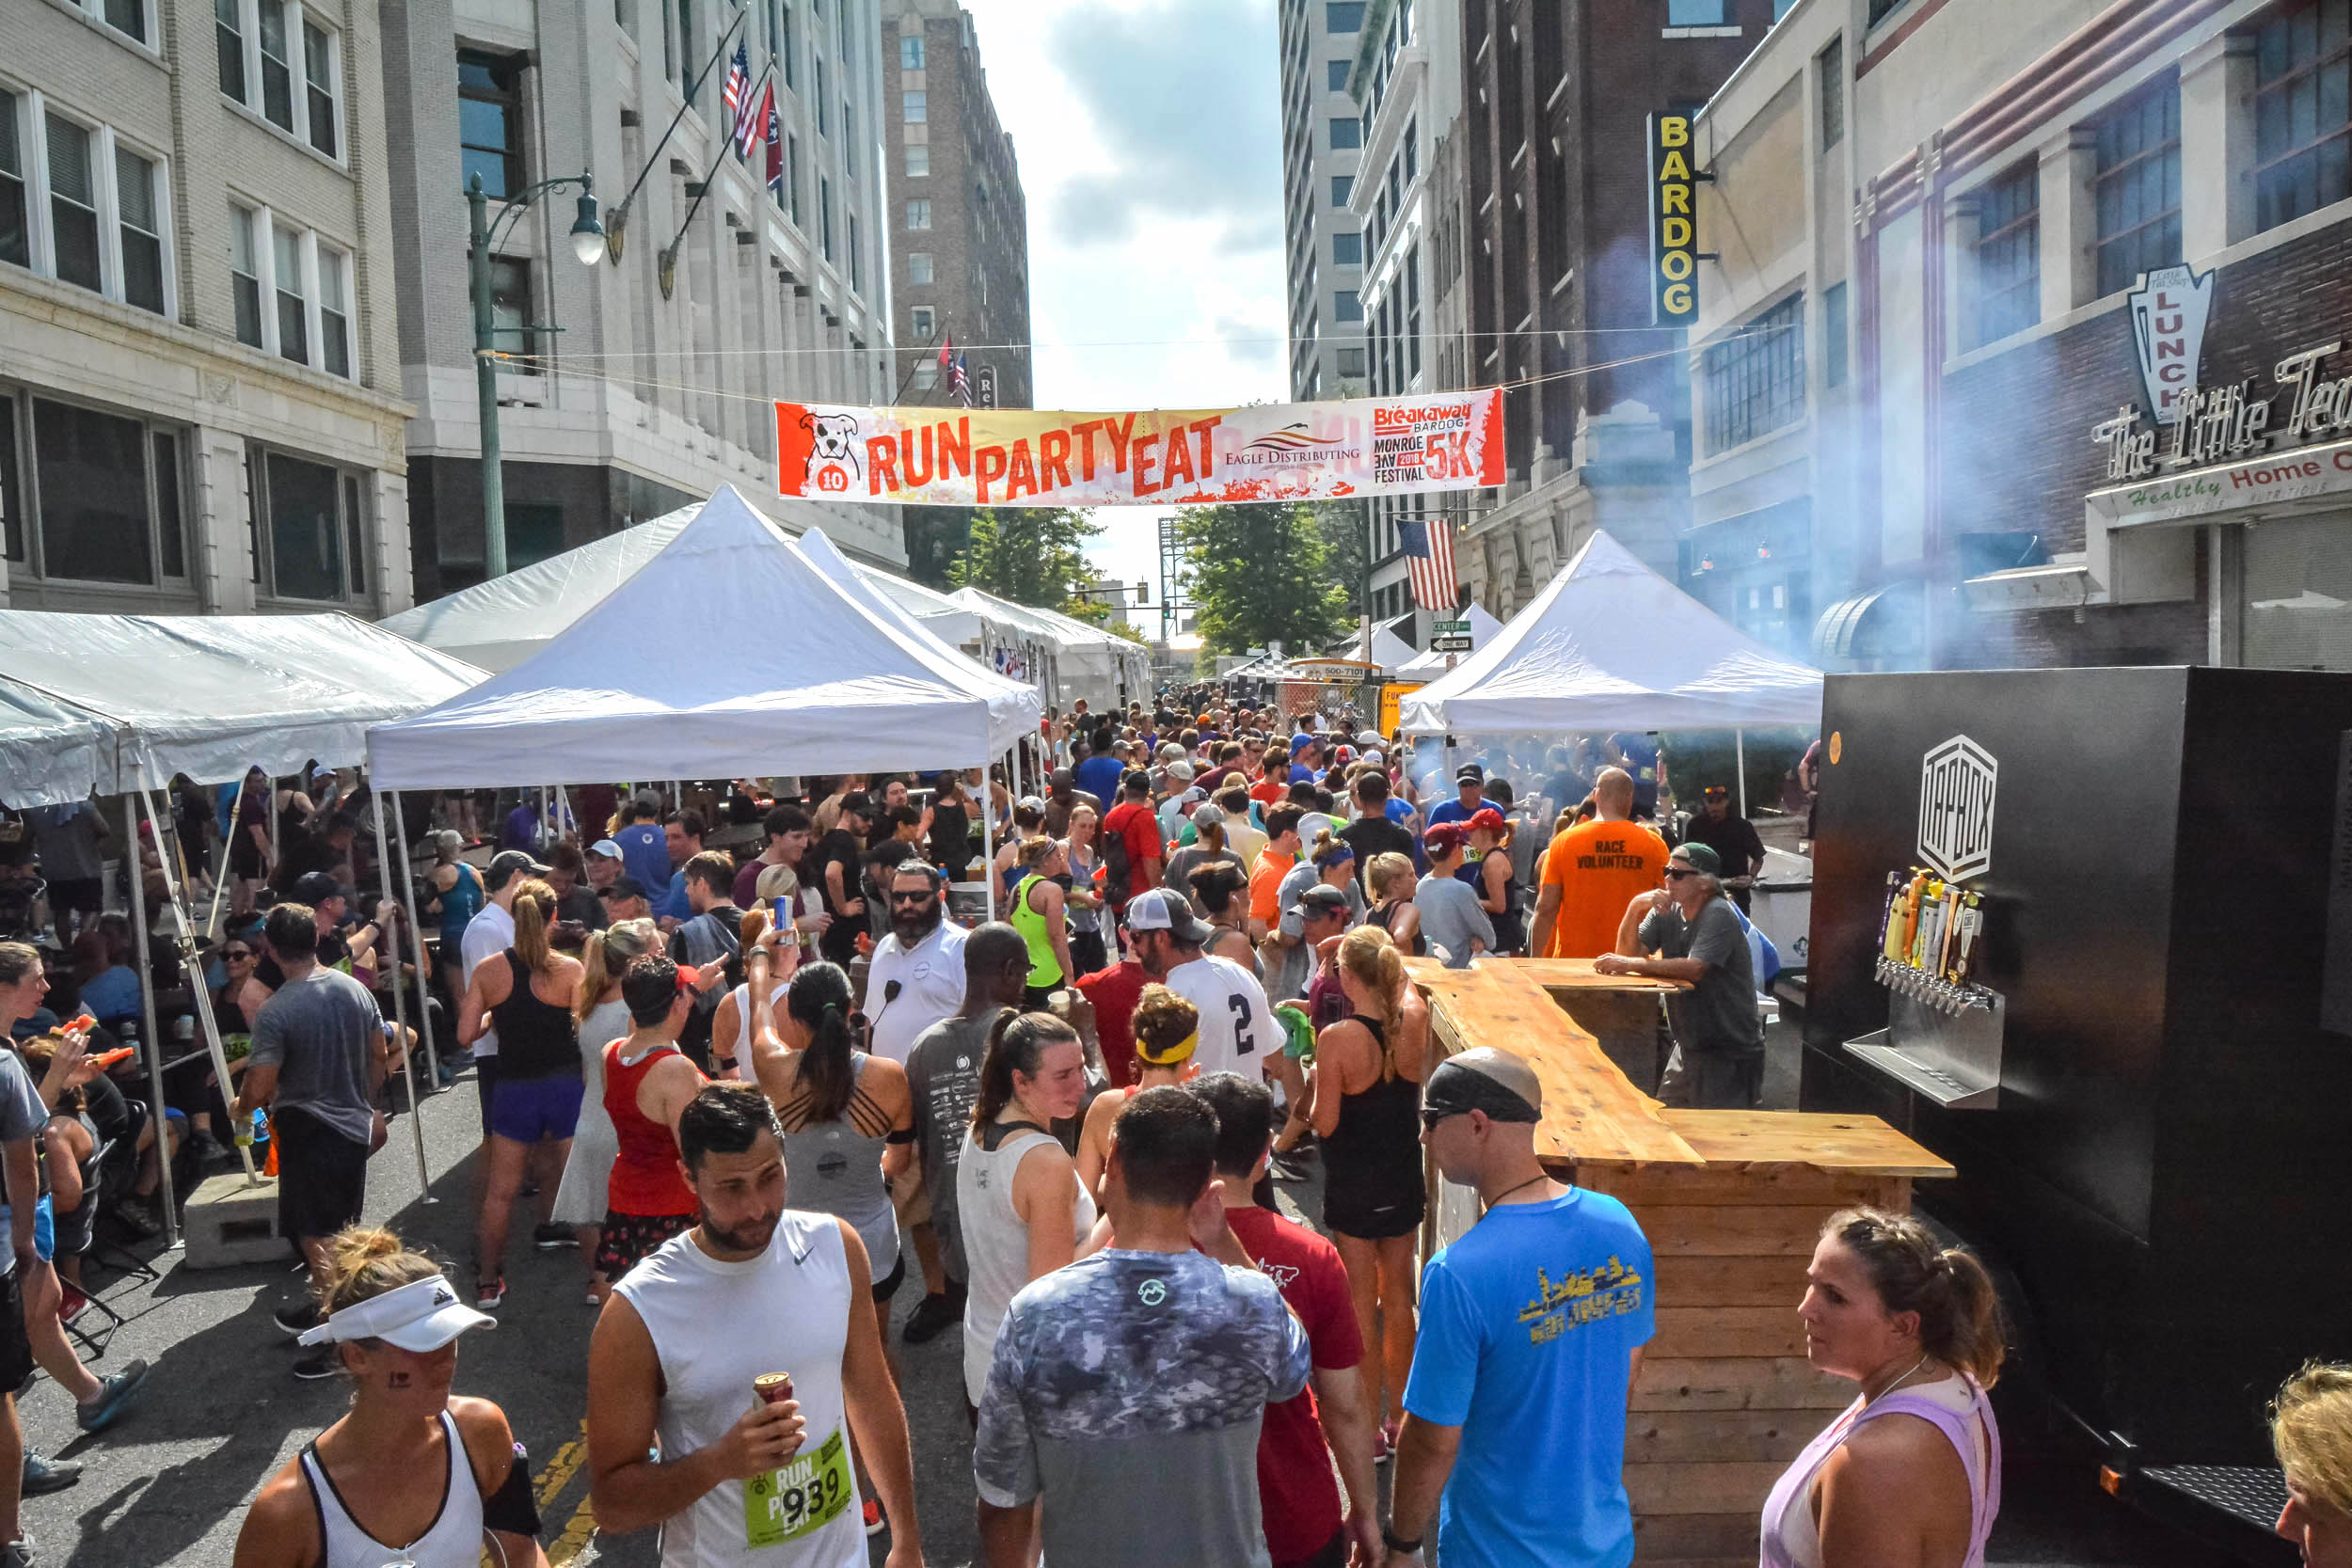 MONROE AVENUE FESTIVAL opens to public - 11:00 aM